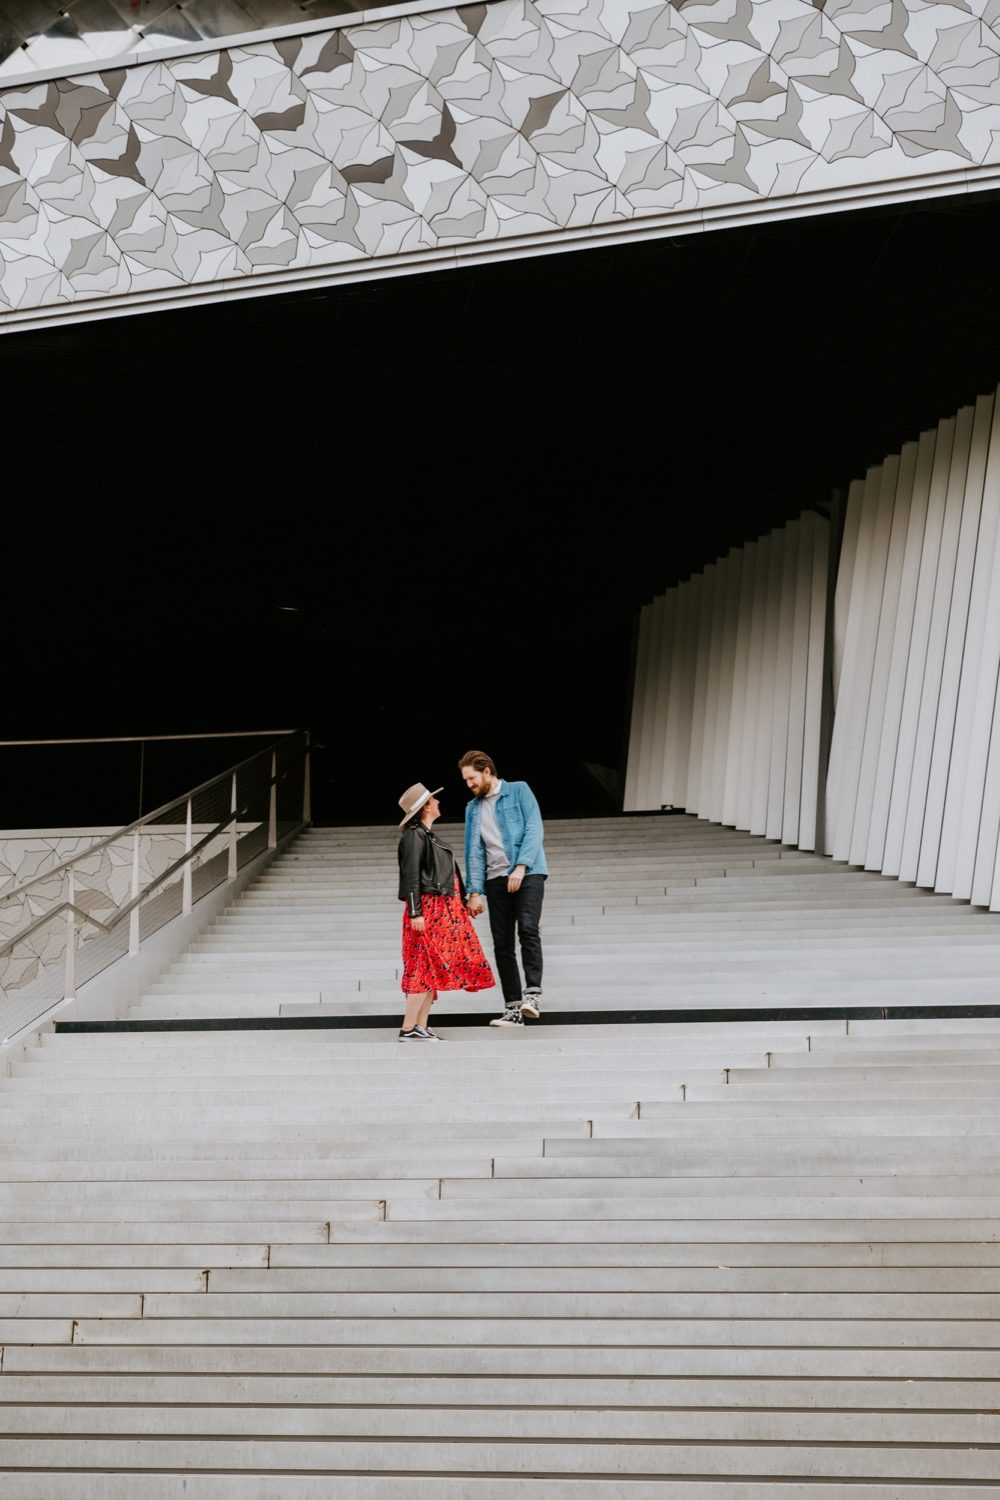 séance couple à paris,philharmonie Love Session à Paris - Julia & Max 36 - Blog Mariage